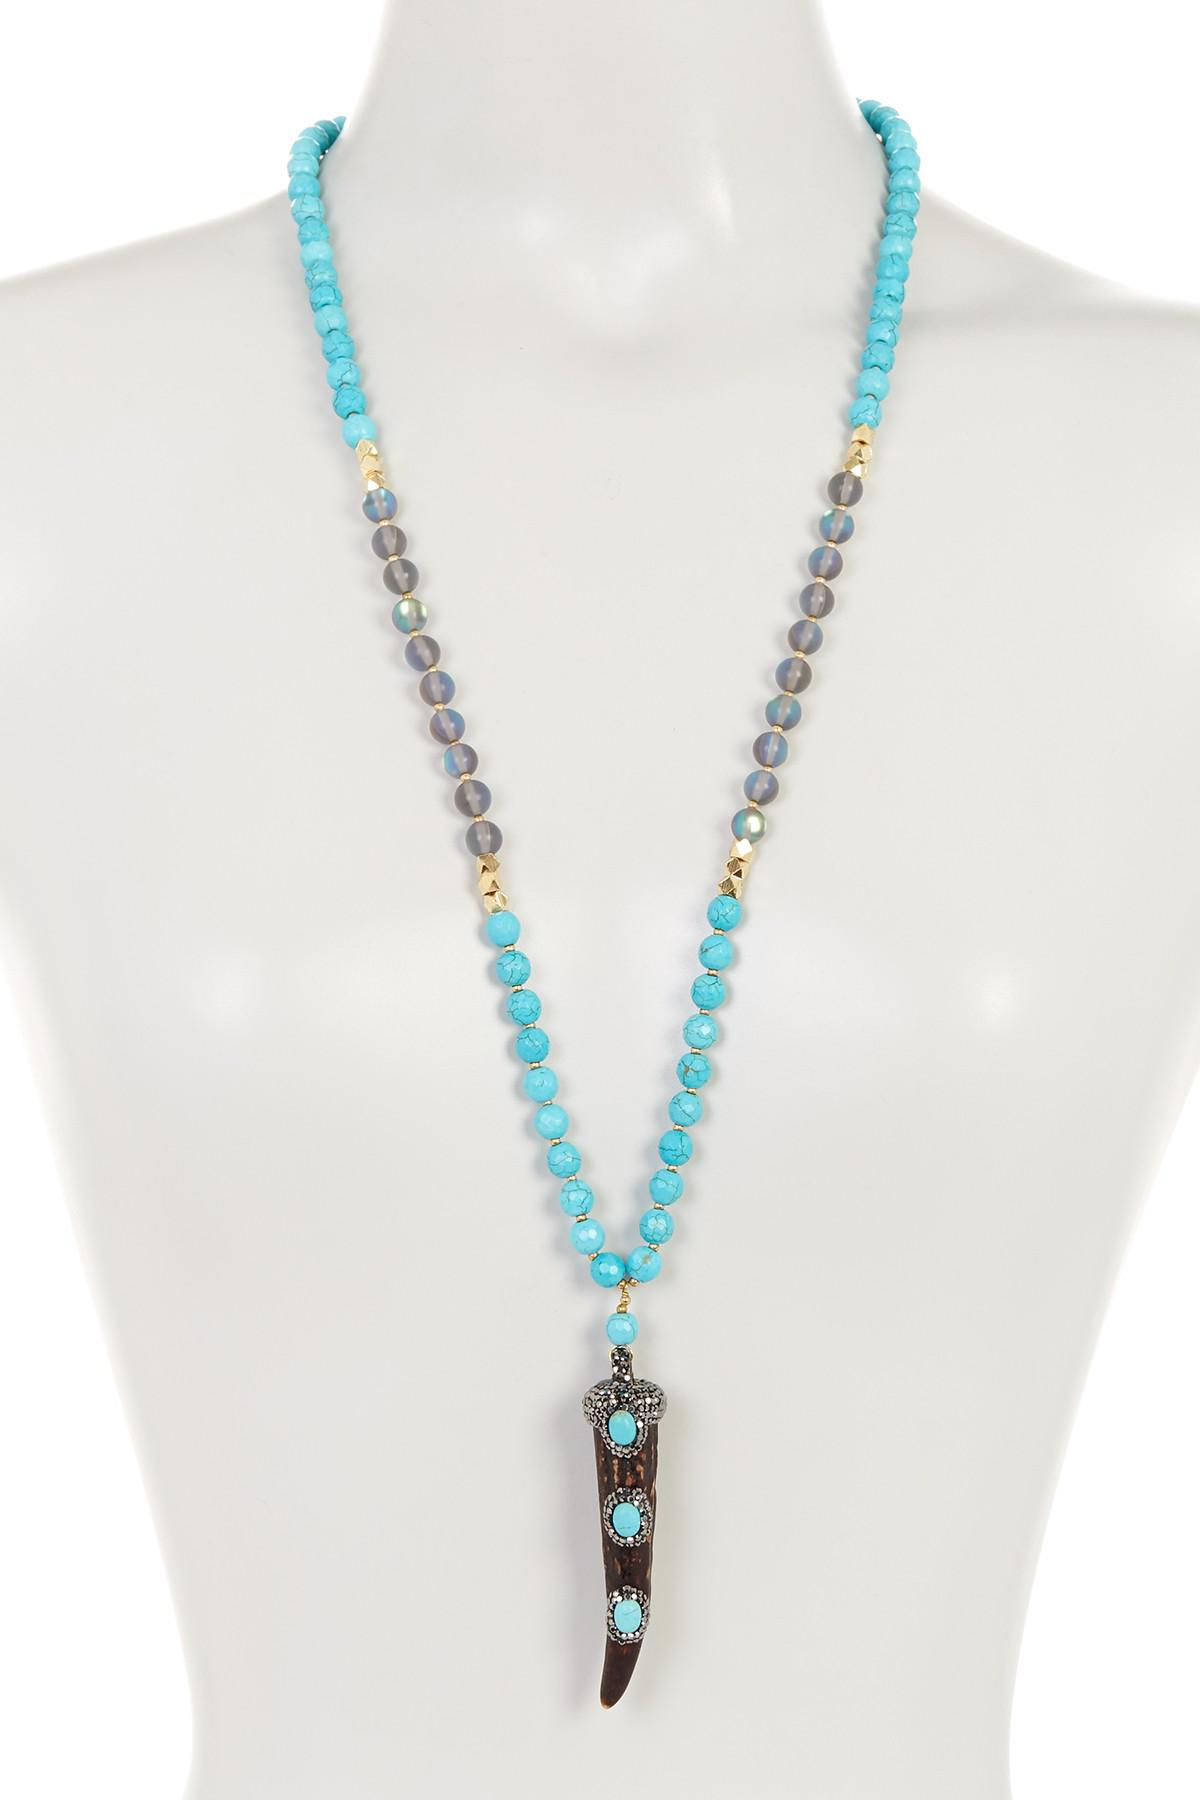 Panacea Carved Pendant Necklace w/ Dangles, Turquoise